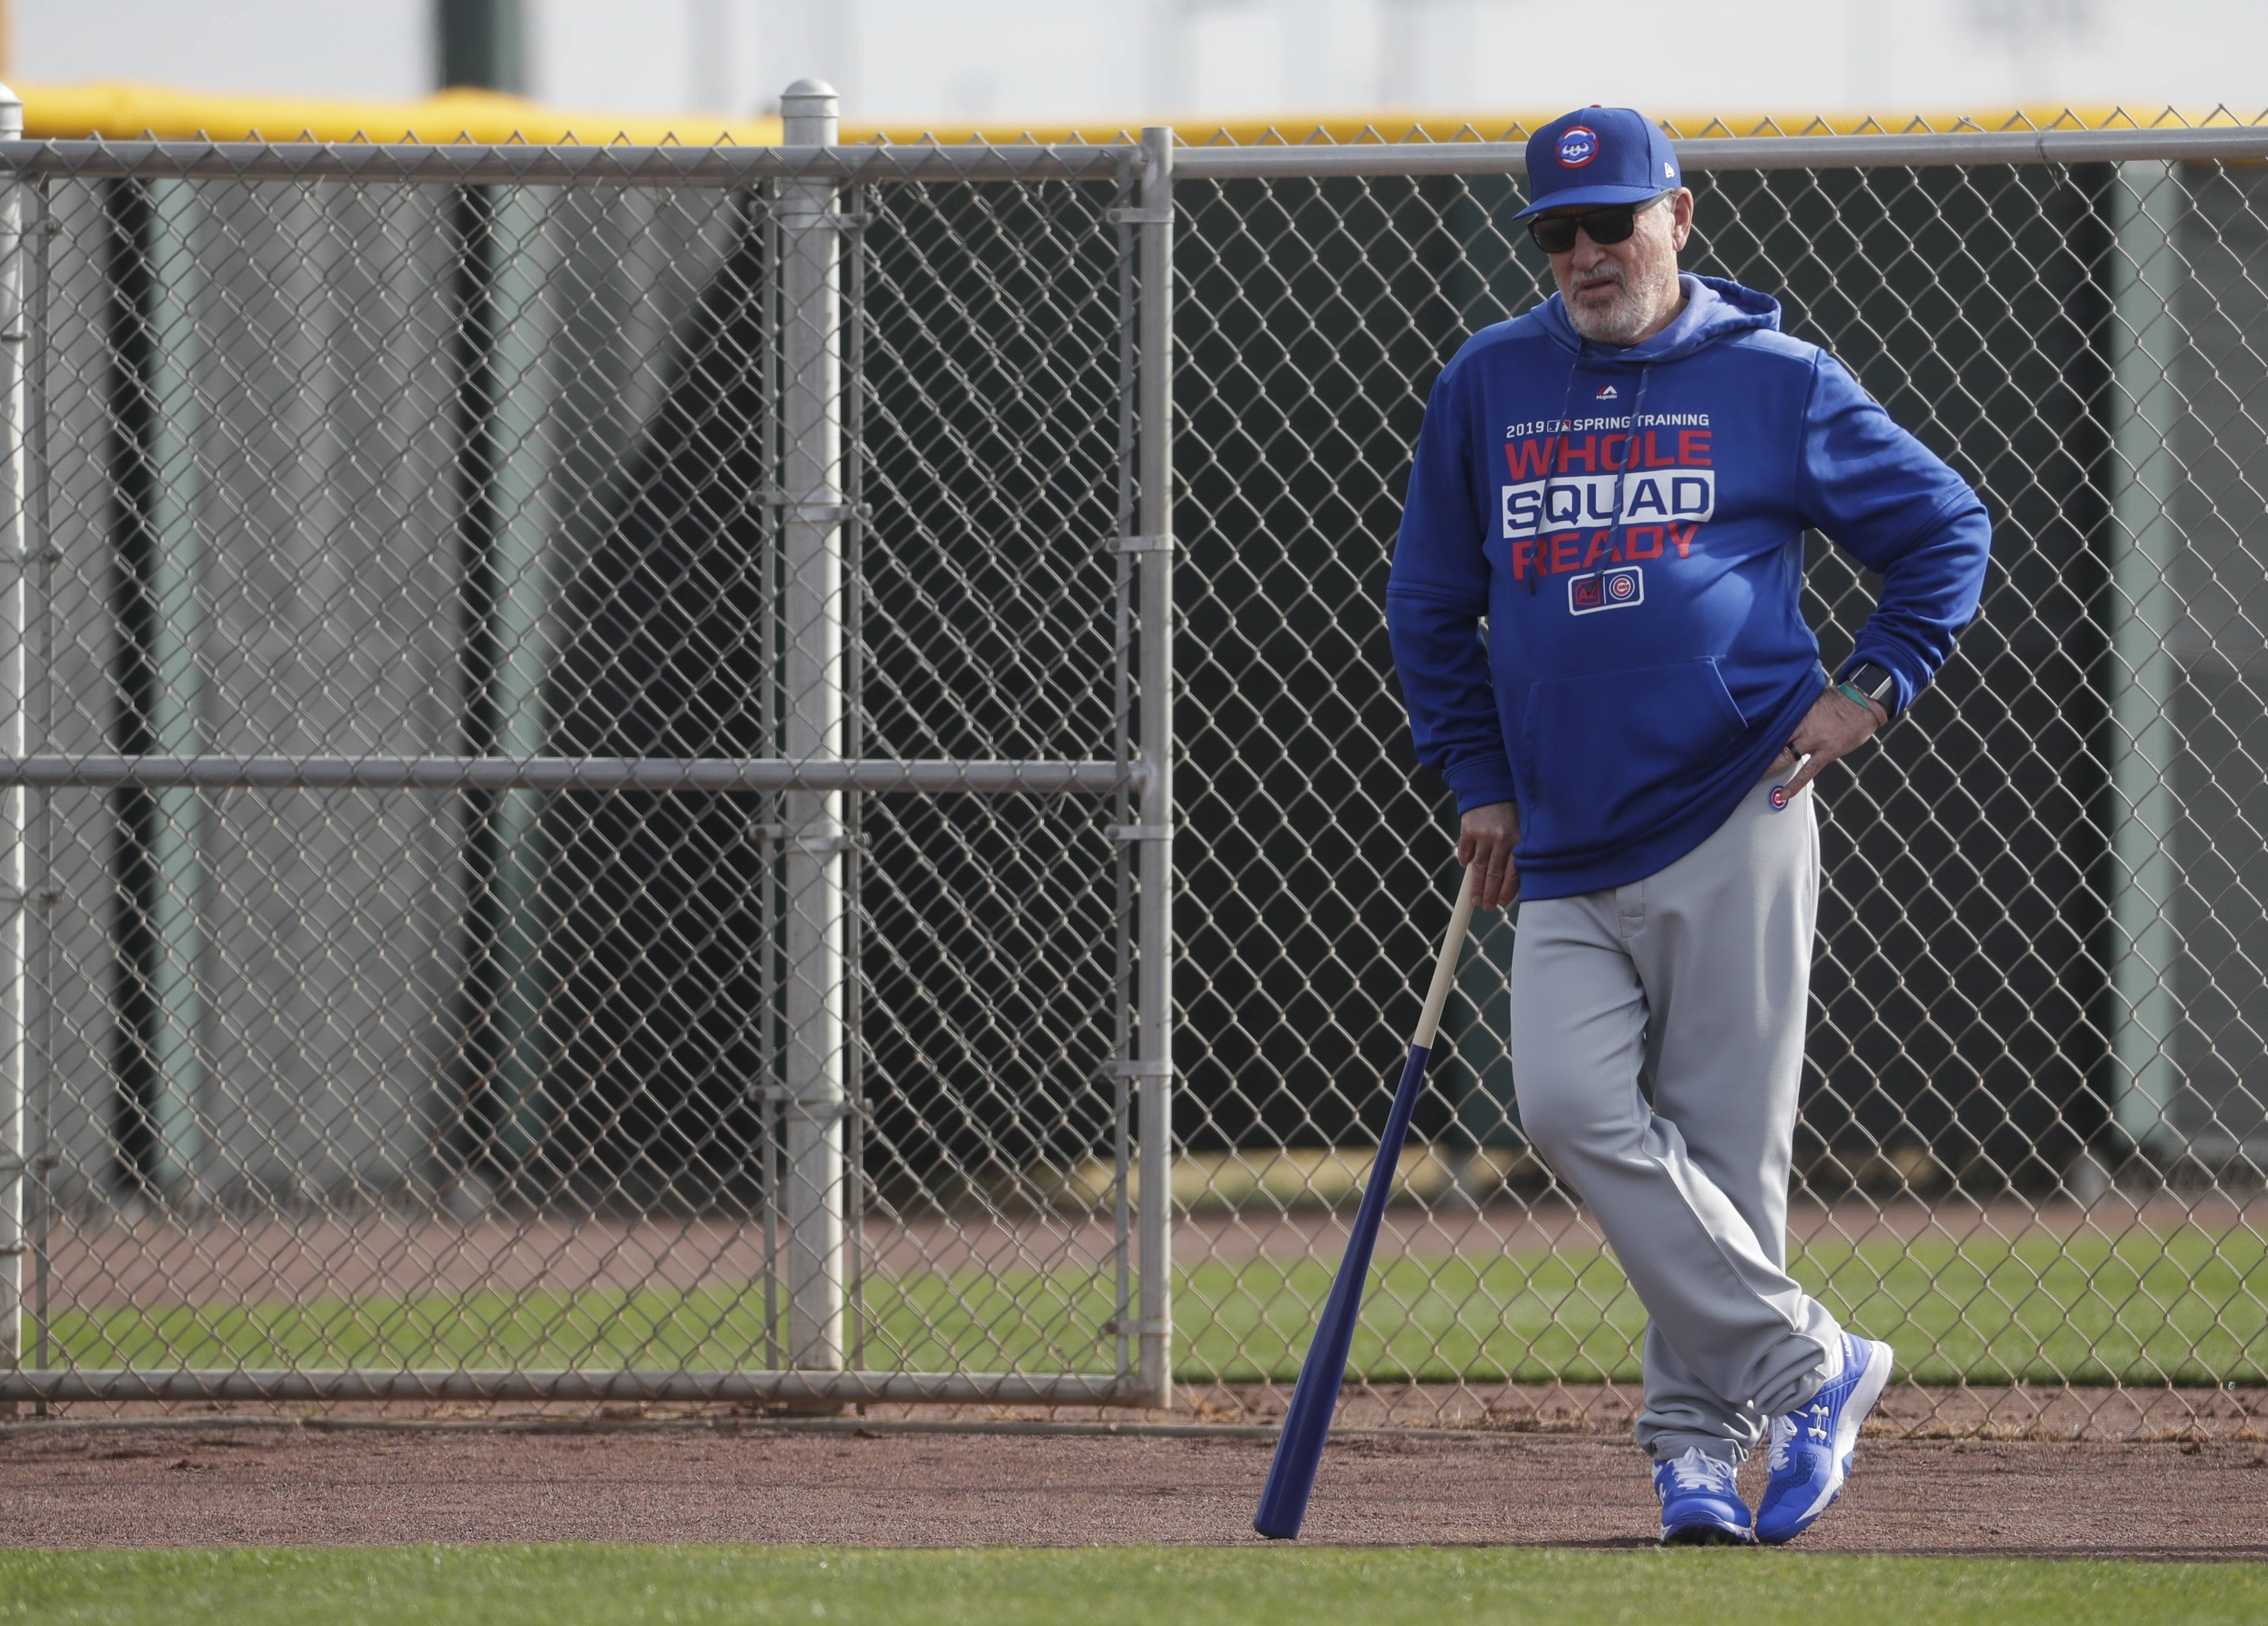 Chicago Cubs manager Joe Maddon says he hasn't noticed much of a change in his own coaching style in the early days of spring training but that he does love working with millennials.